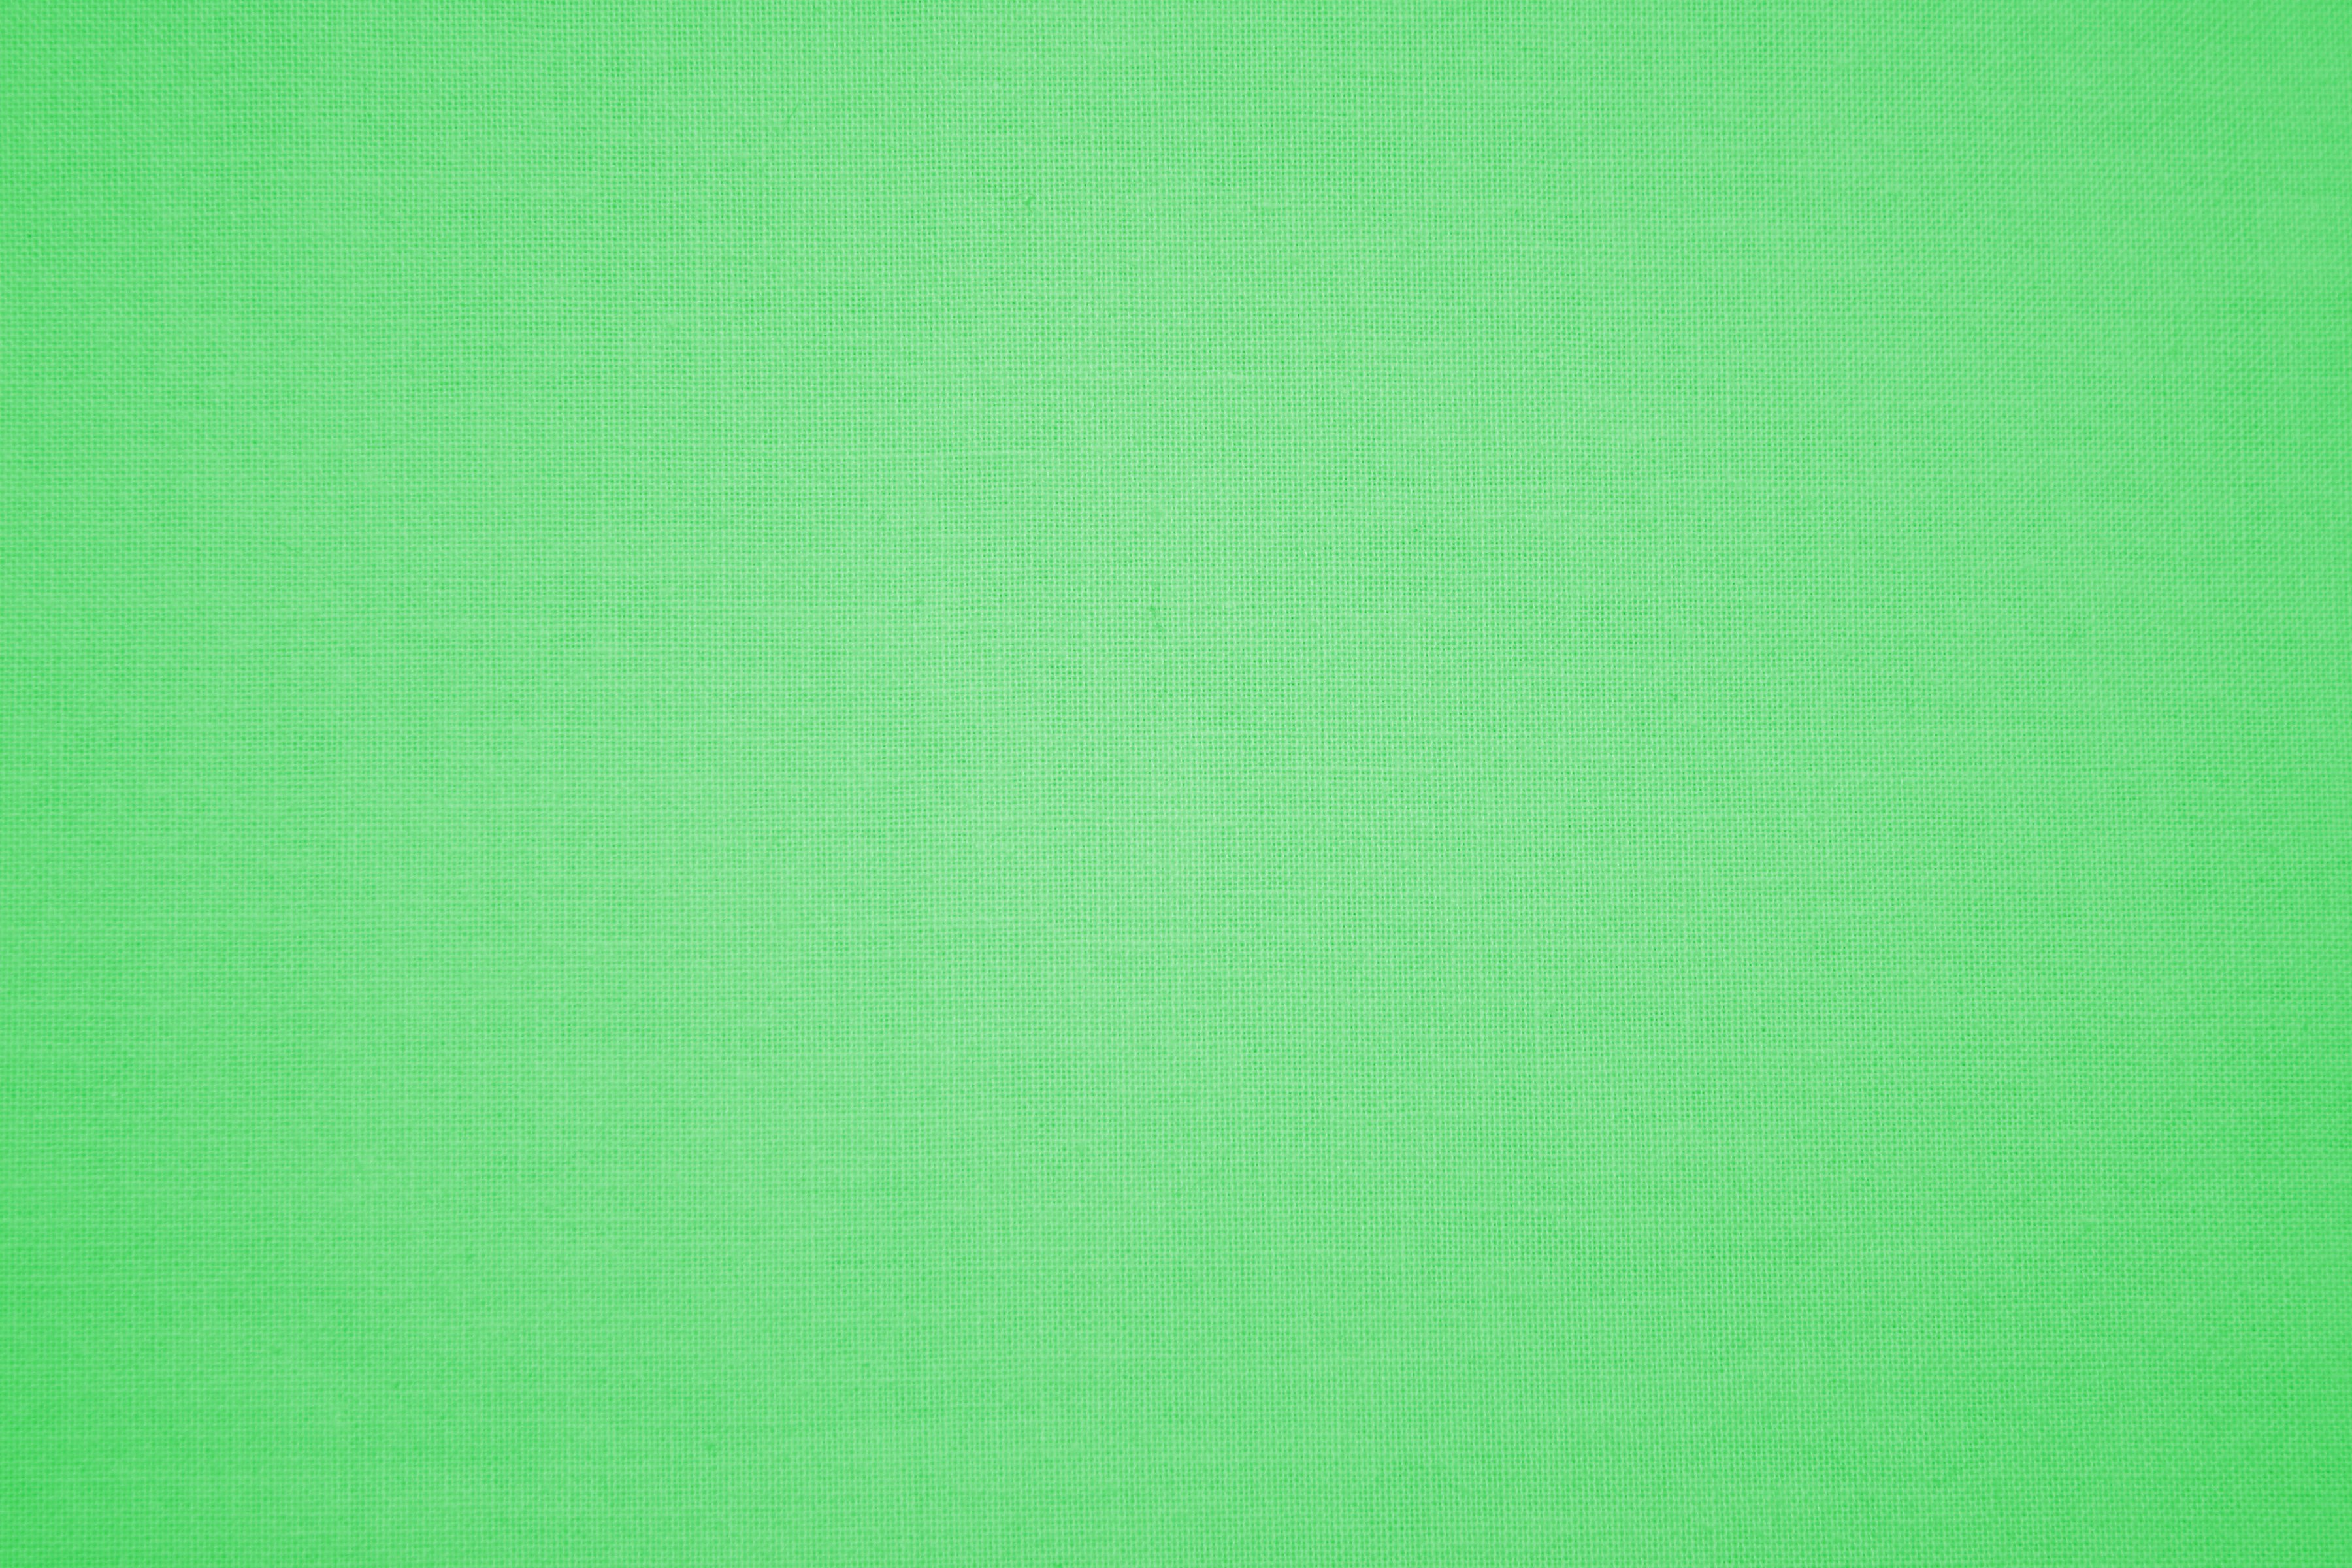 Light Green Canvas Fabric Texture Picture 3600x2400